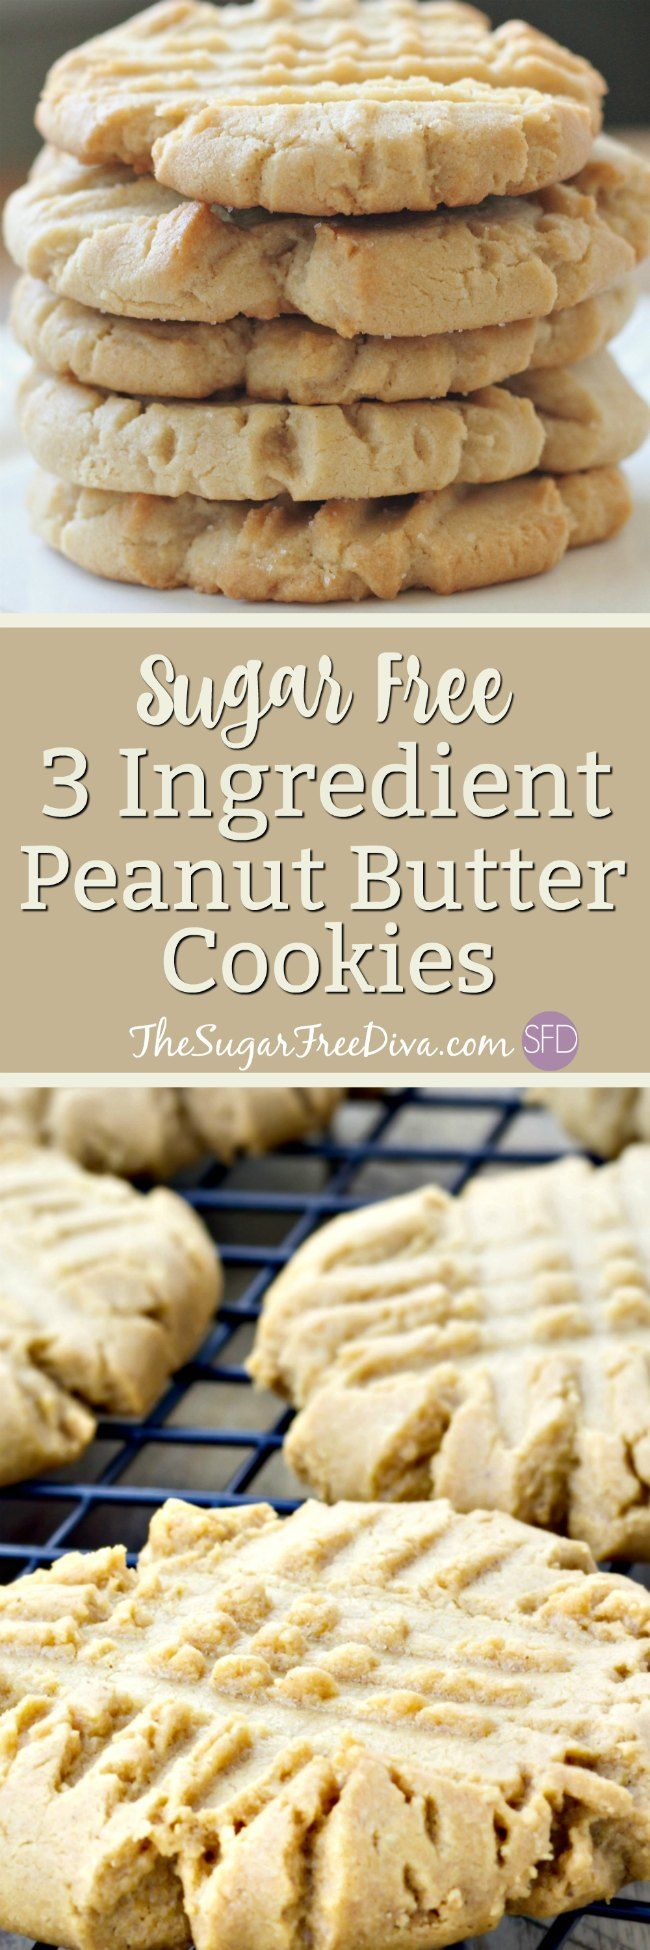 3 Ingredient Sugar Free Peanut Butter Cookies--Hey- check out these cookies. The recipe for these peanut butter cookies has only three ingredients in it. You should see what those ingredients are in these peanut butter cookies that are a great snack or dessert. They are also gluten and sugar free. #cookie #cookies #sugarfree #dessert